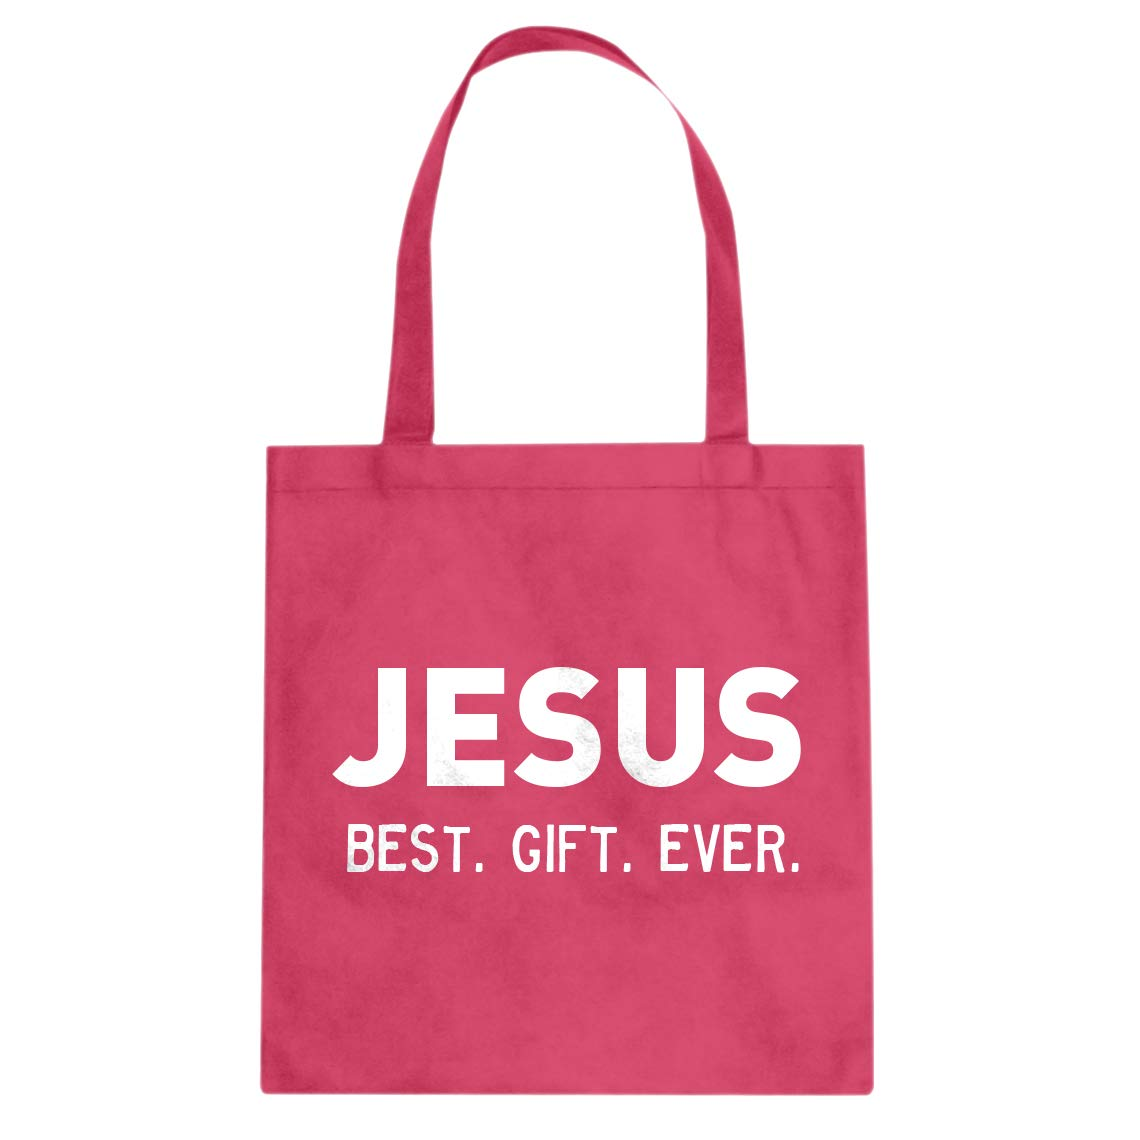 Indica Plateau Jesus Gift Best Ever Cotton Canvas Tote Bag